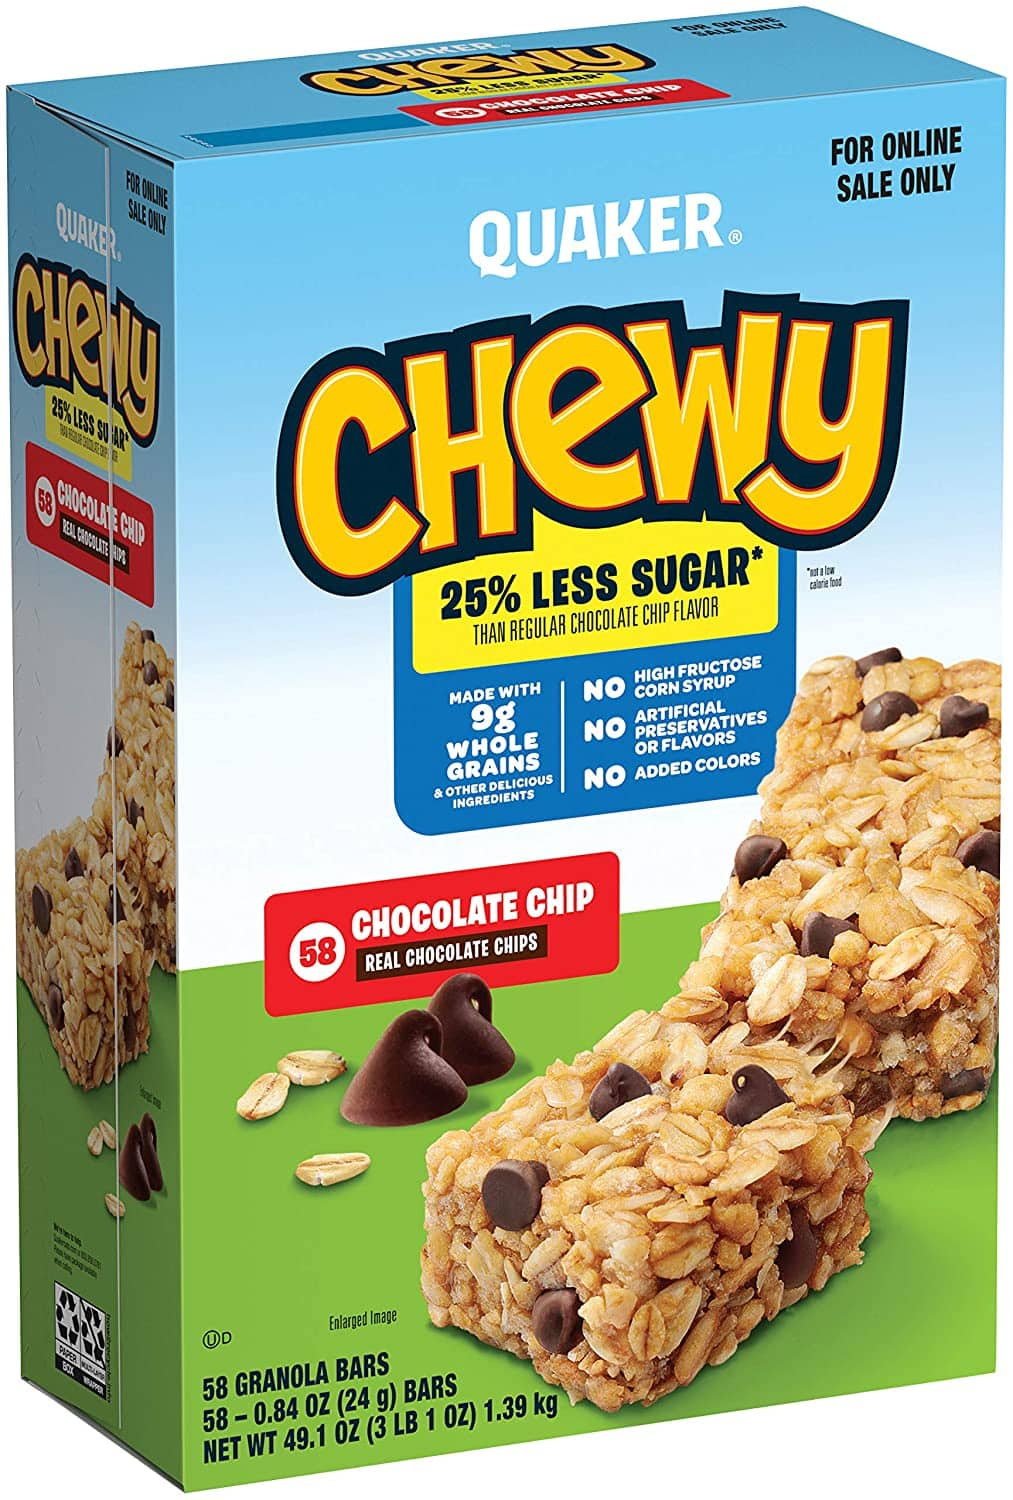 Quaker Chewy Granola Bars, 25% Less Sugar, Chocolate Chip (58 Pack) $6.03 with s/s